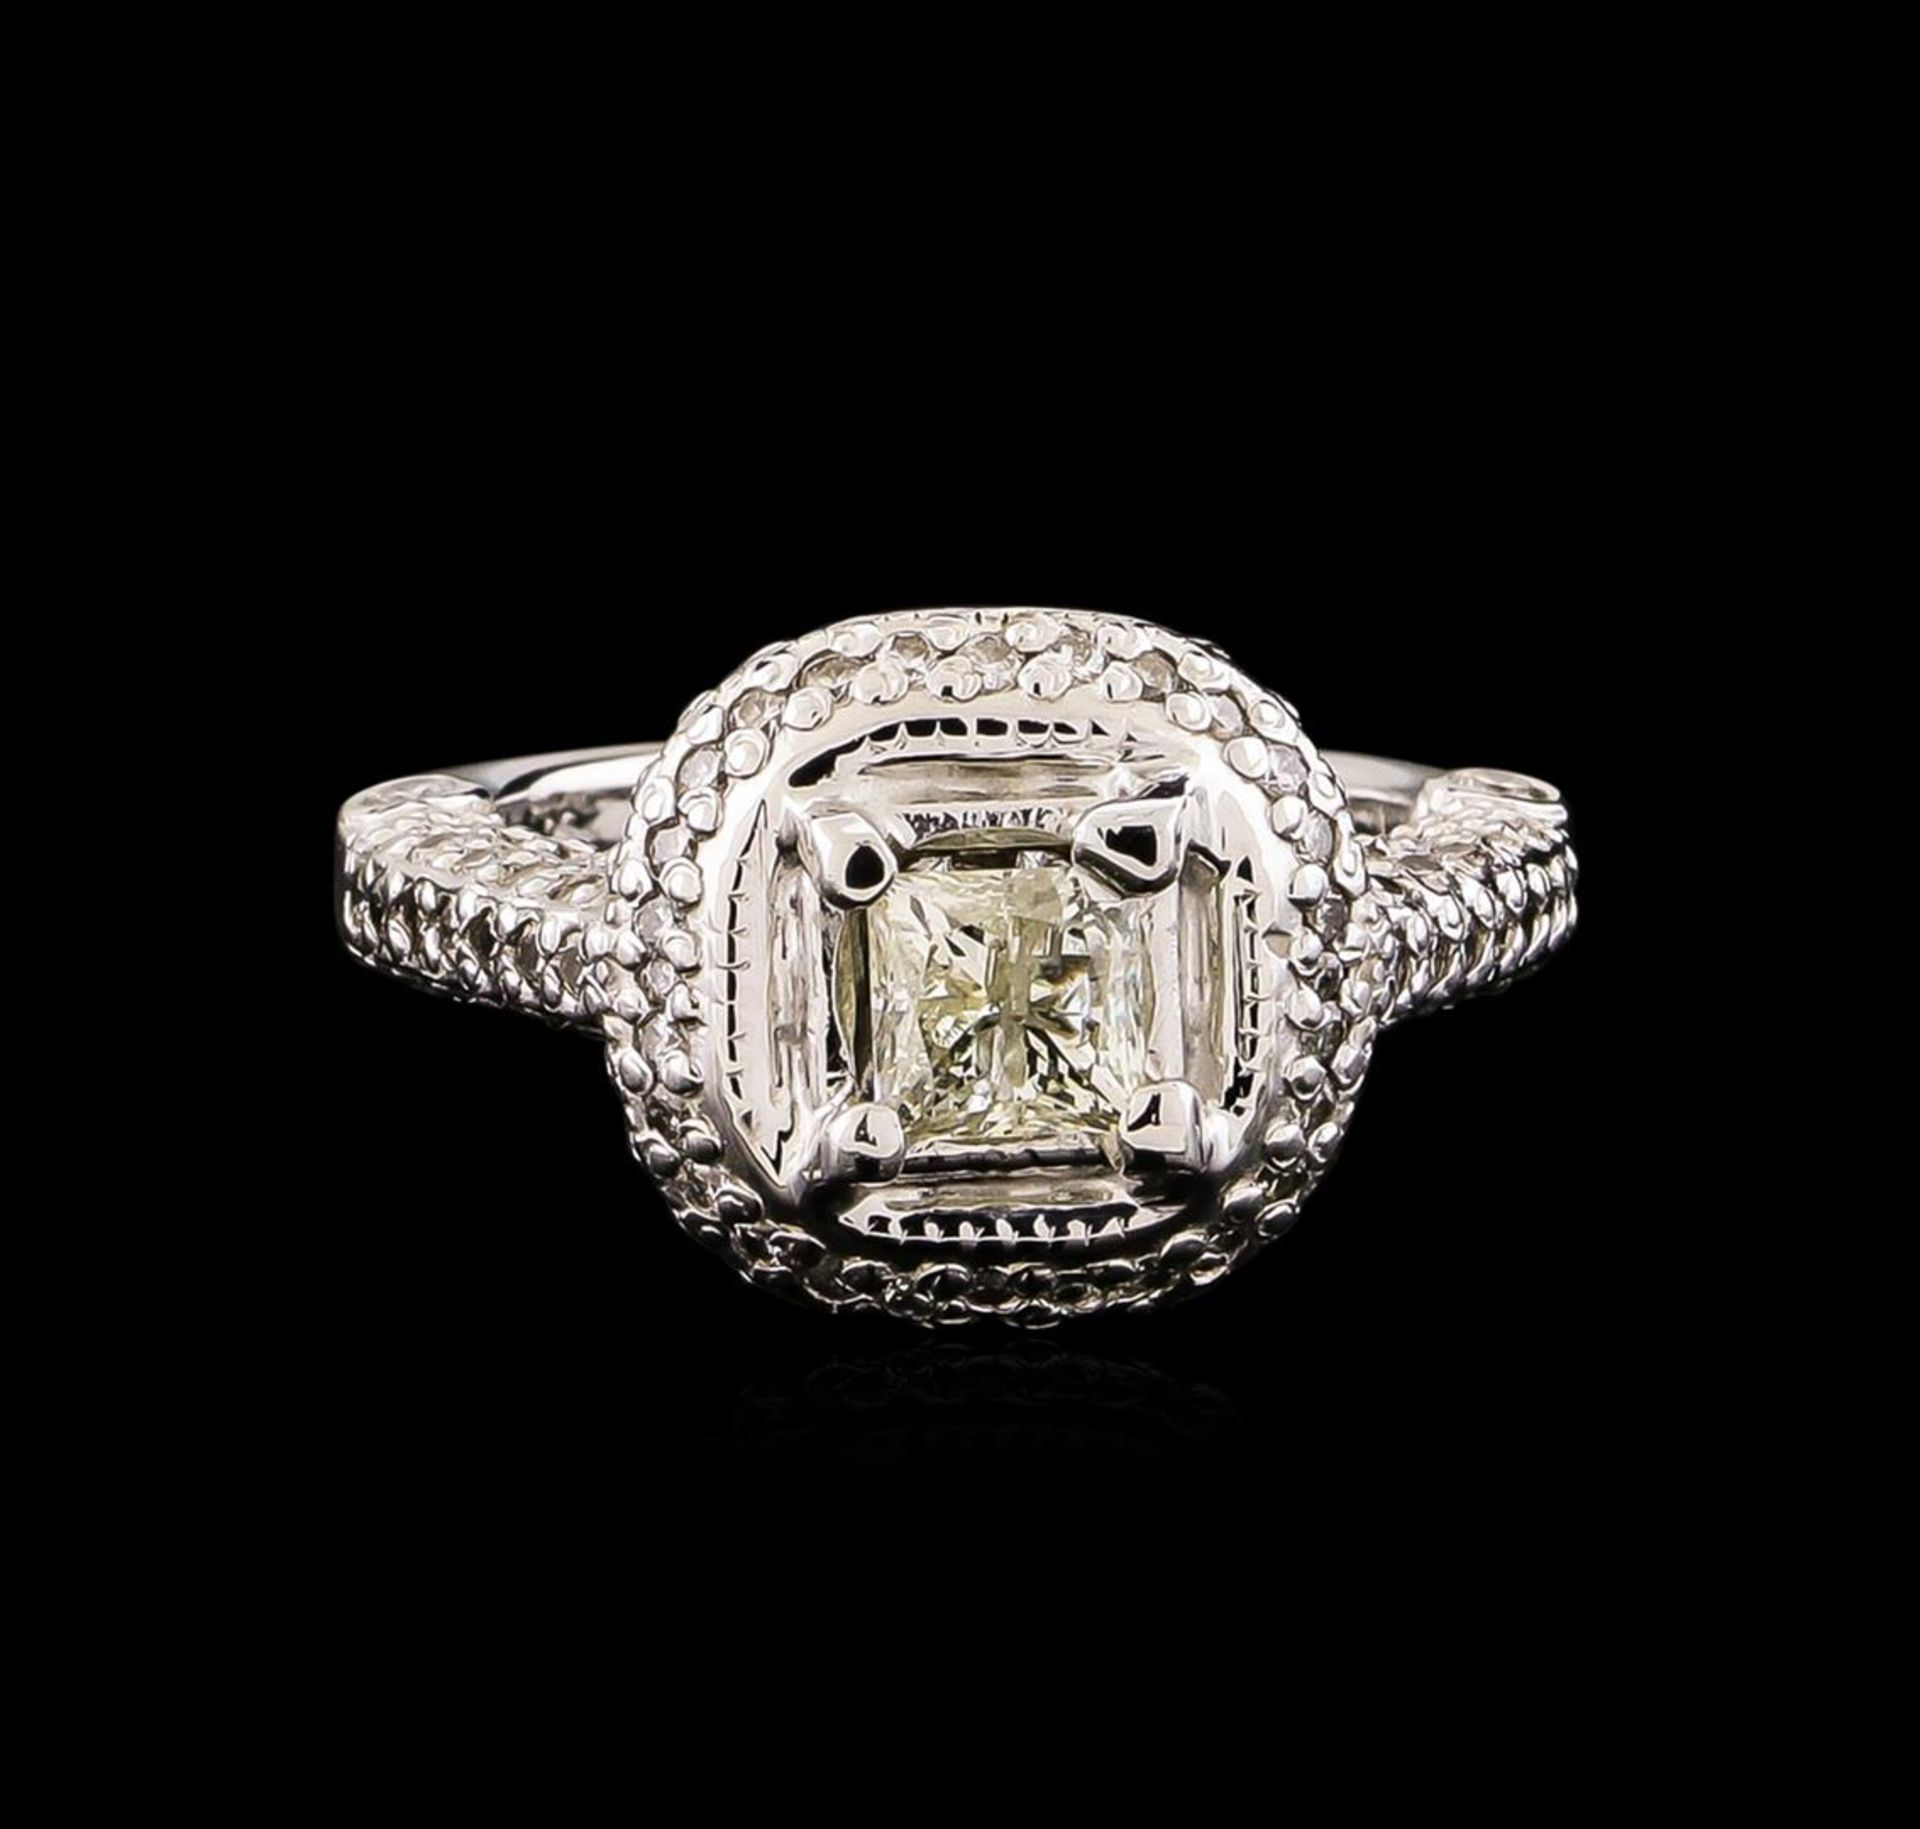 14KT White Gold 1.78 ctw Diamond Ring - Image 2 of 5